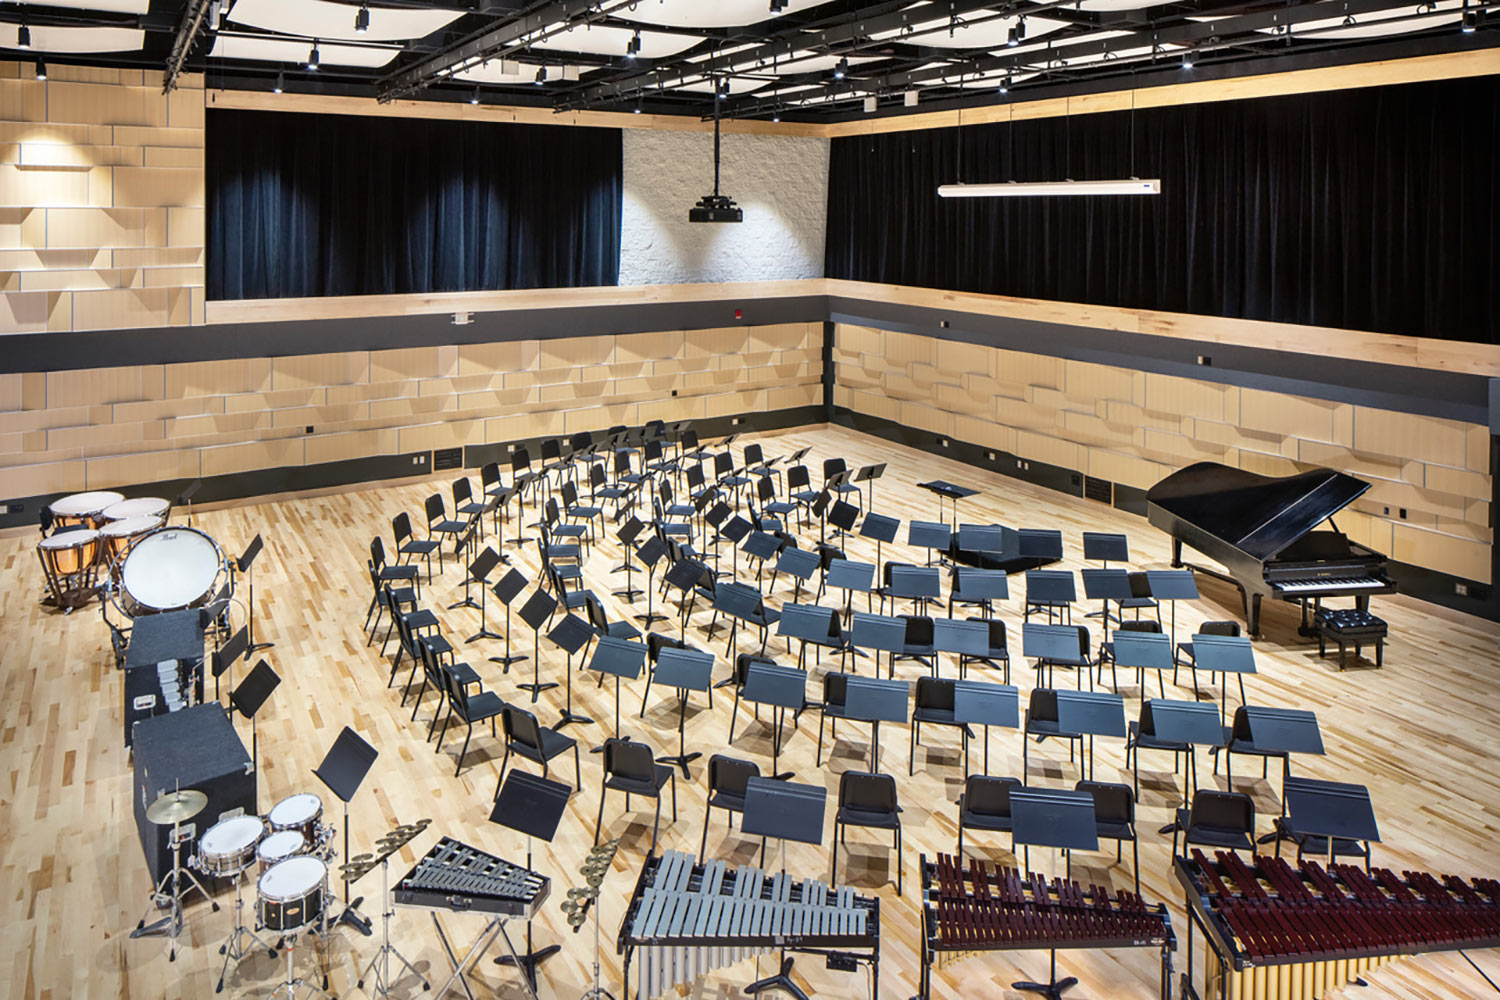 Interlochen has recently completed their new complex. A key component of the new complex is a state-of-the-art recording/teaching studio complex developed by WSDG. Ensemble Room.